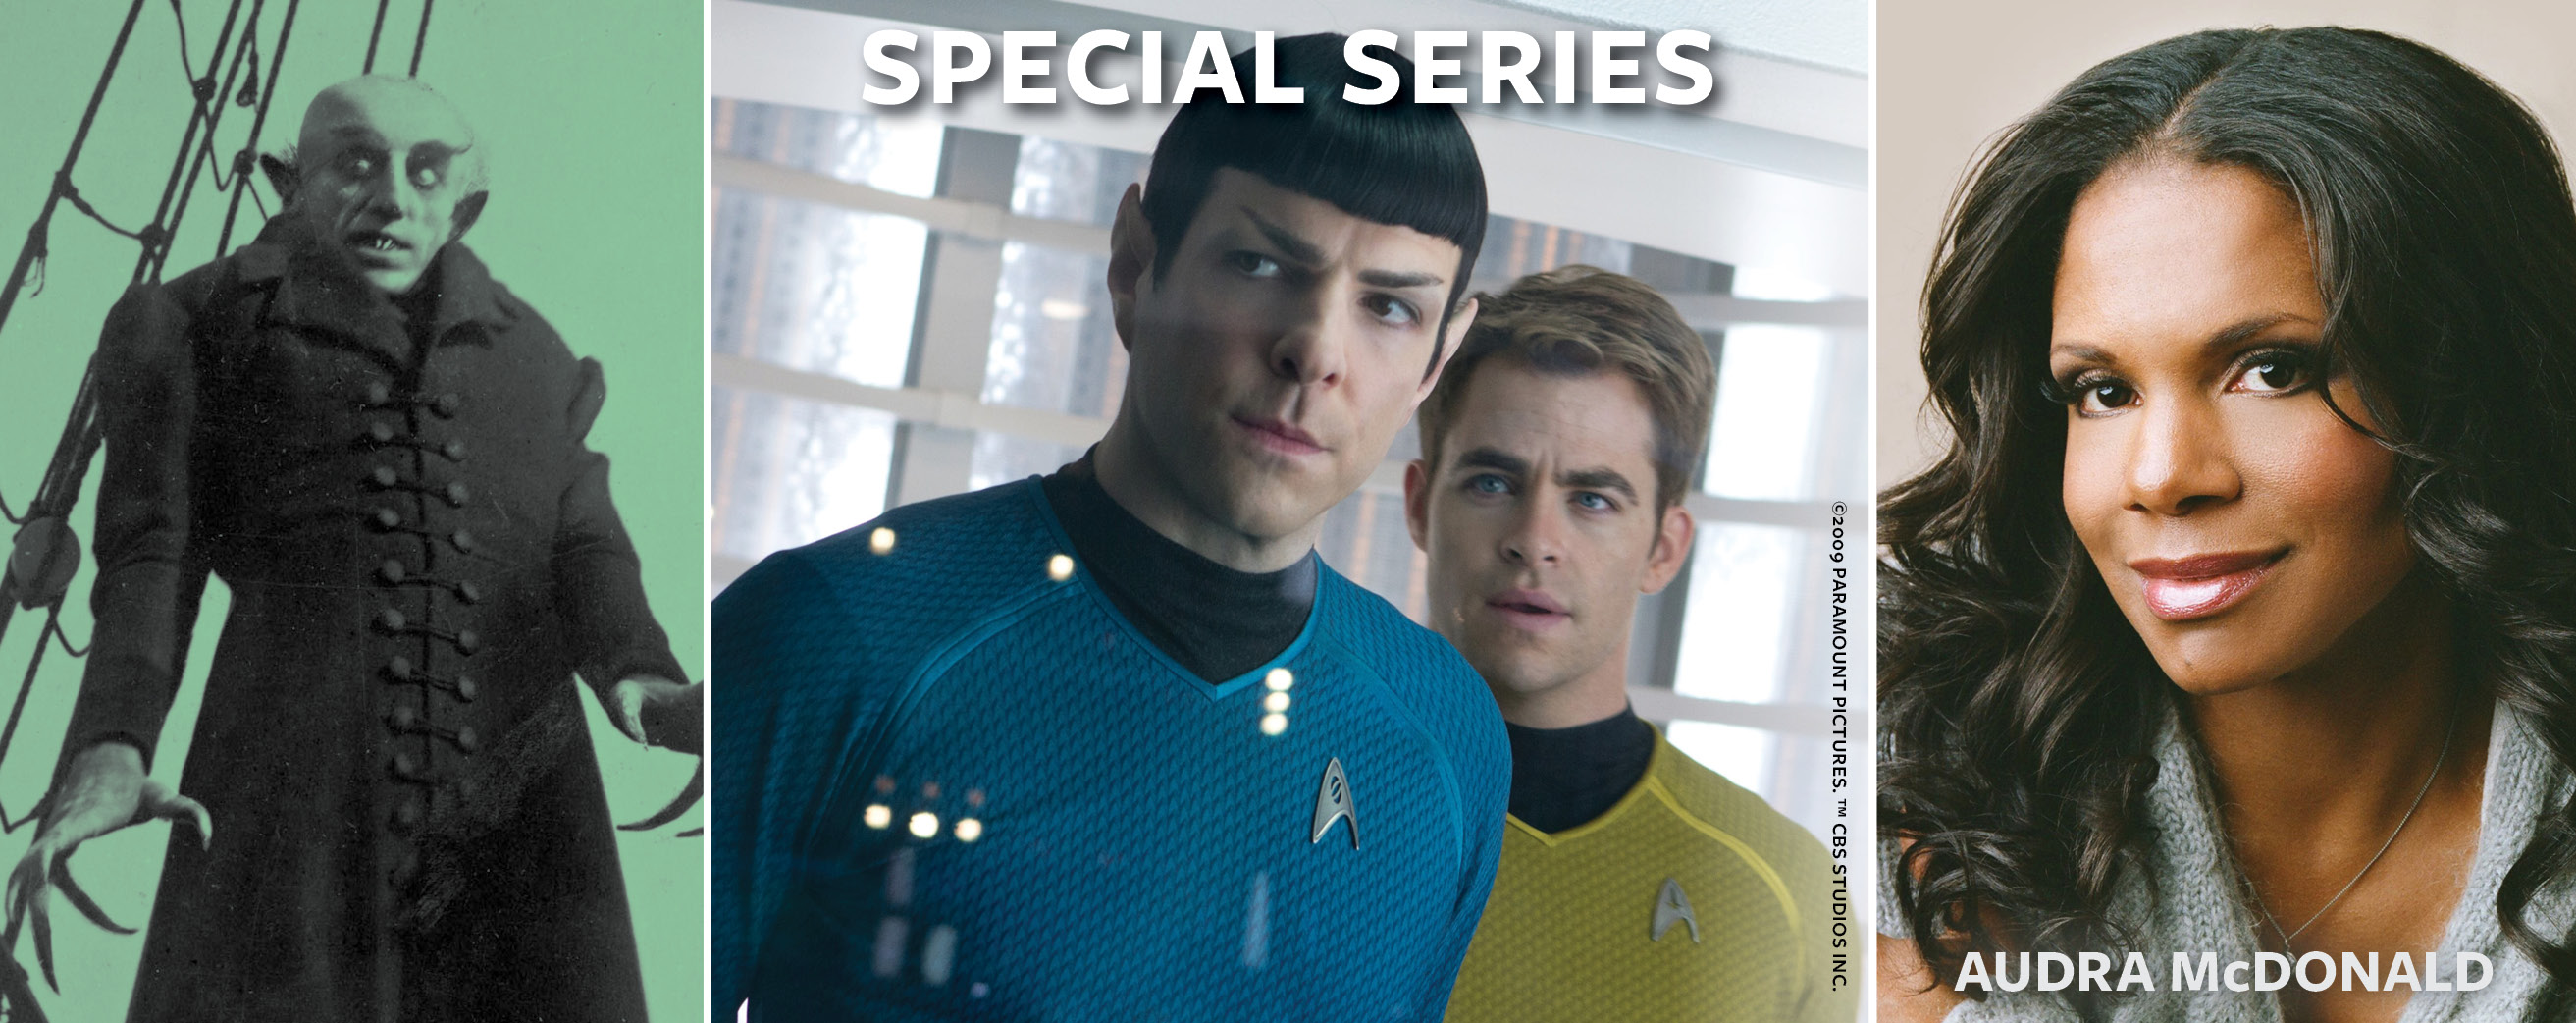 special series promotional banner